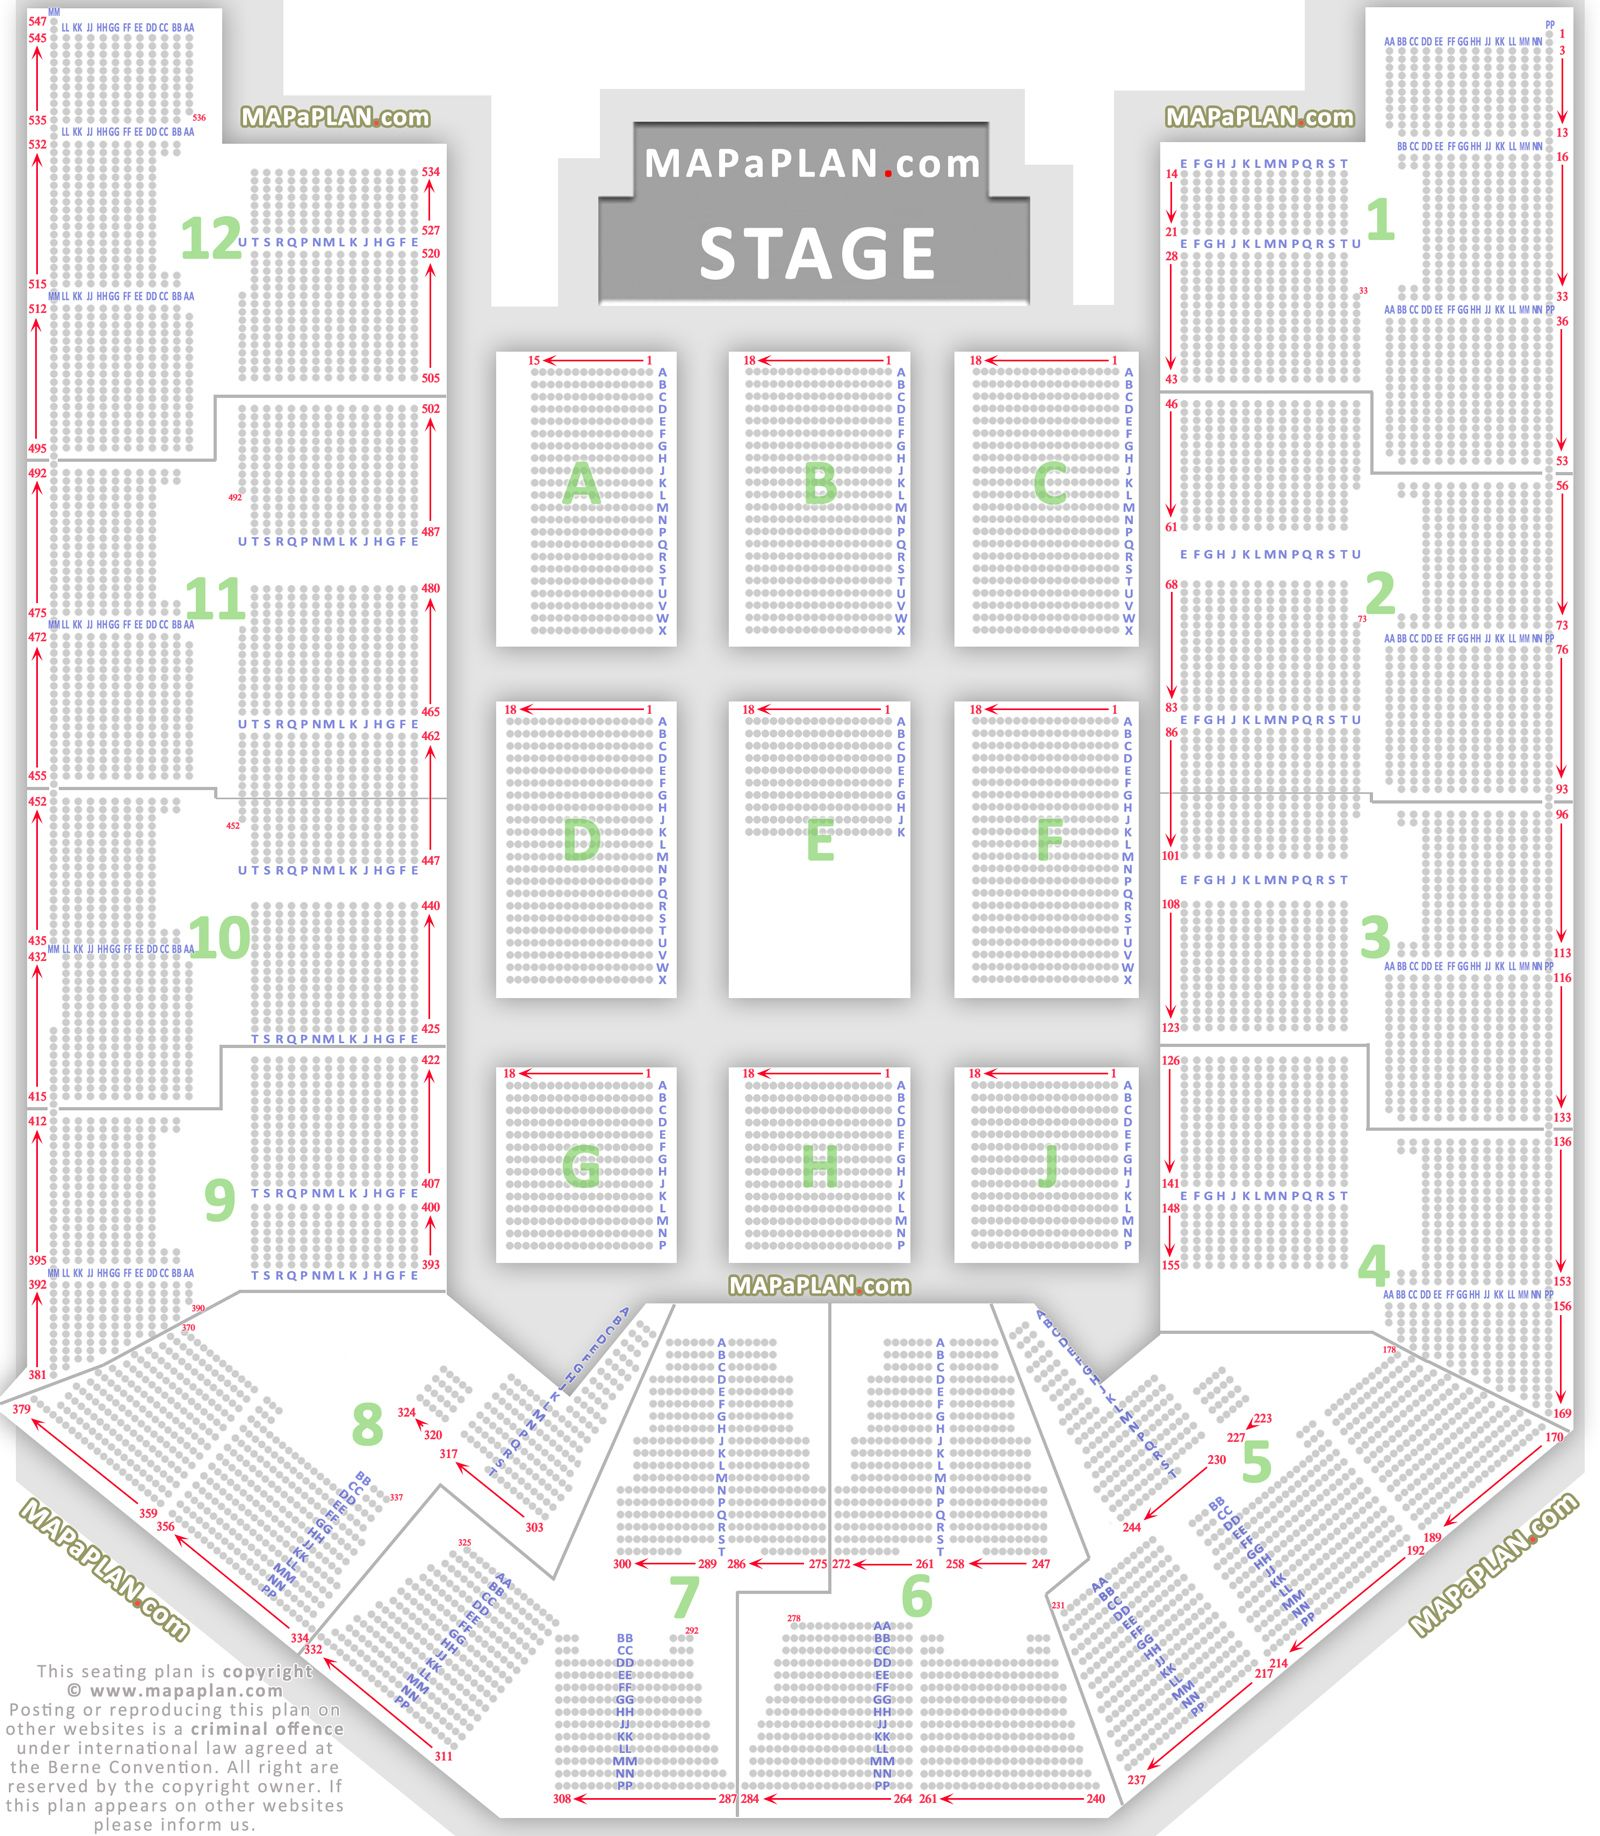 Birmingham Nia National Indoor Arena Seating Plan 01 Detailed Seat Row Numbers Concert Chart Floor Lower Upper Tier Levels Seating Plan How To Plan Birmingham